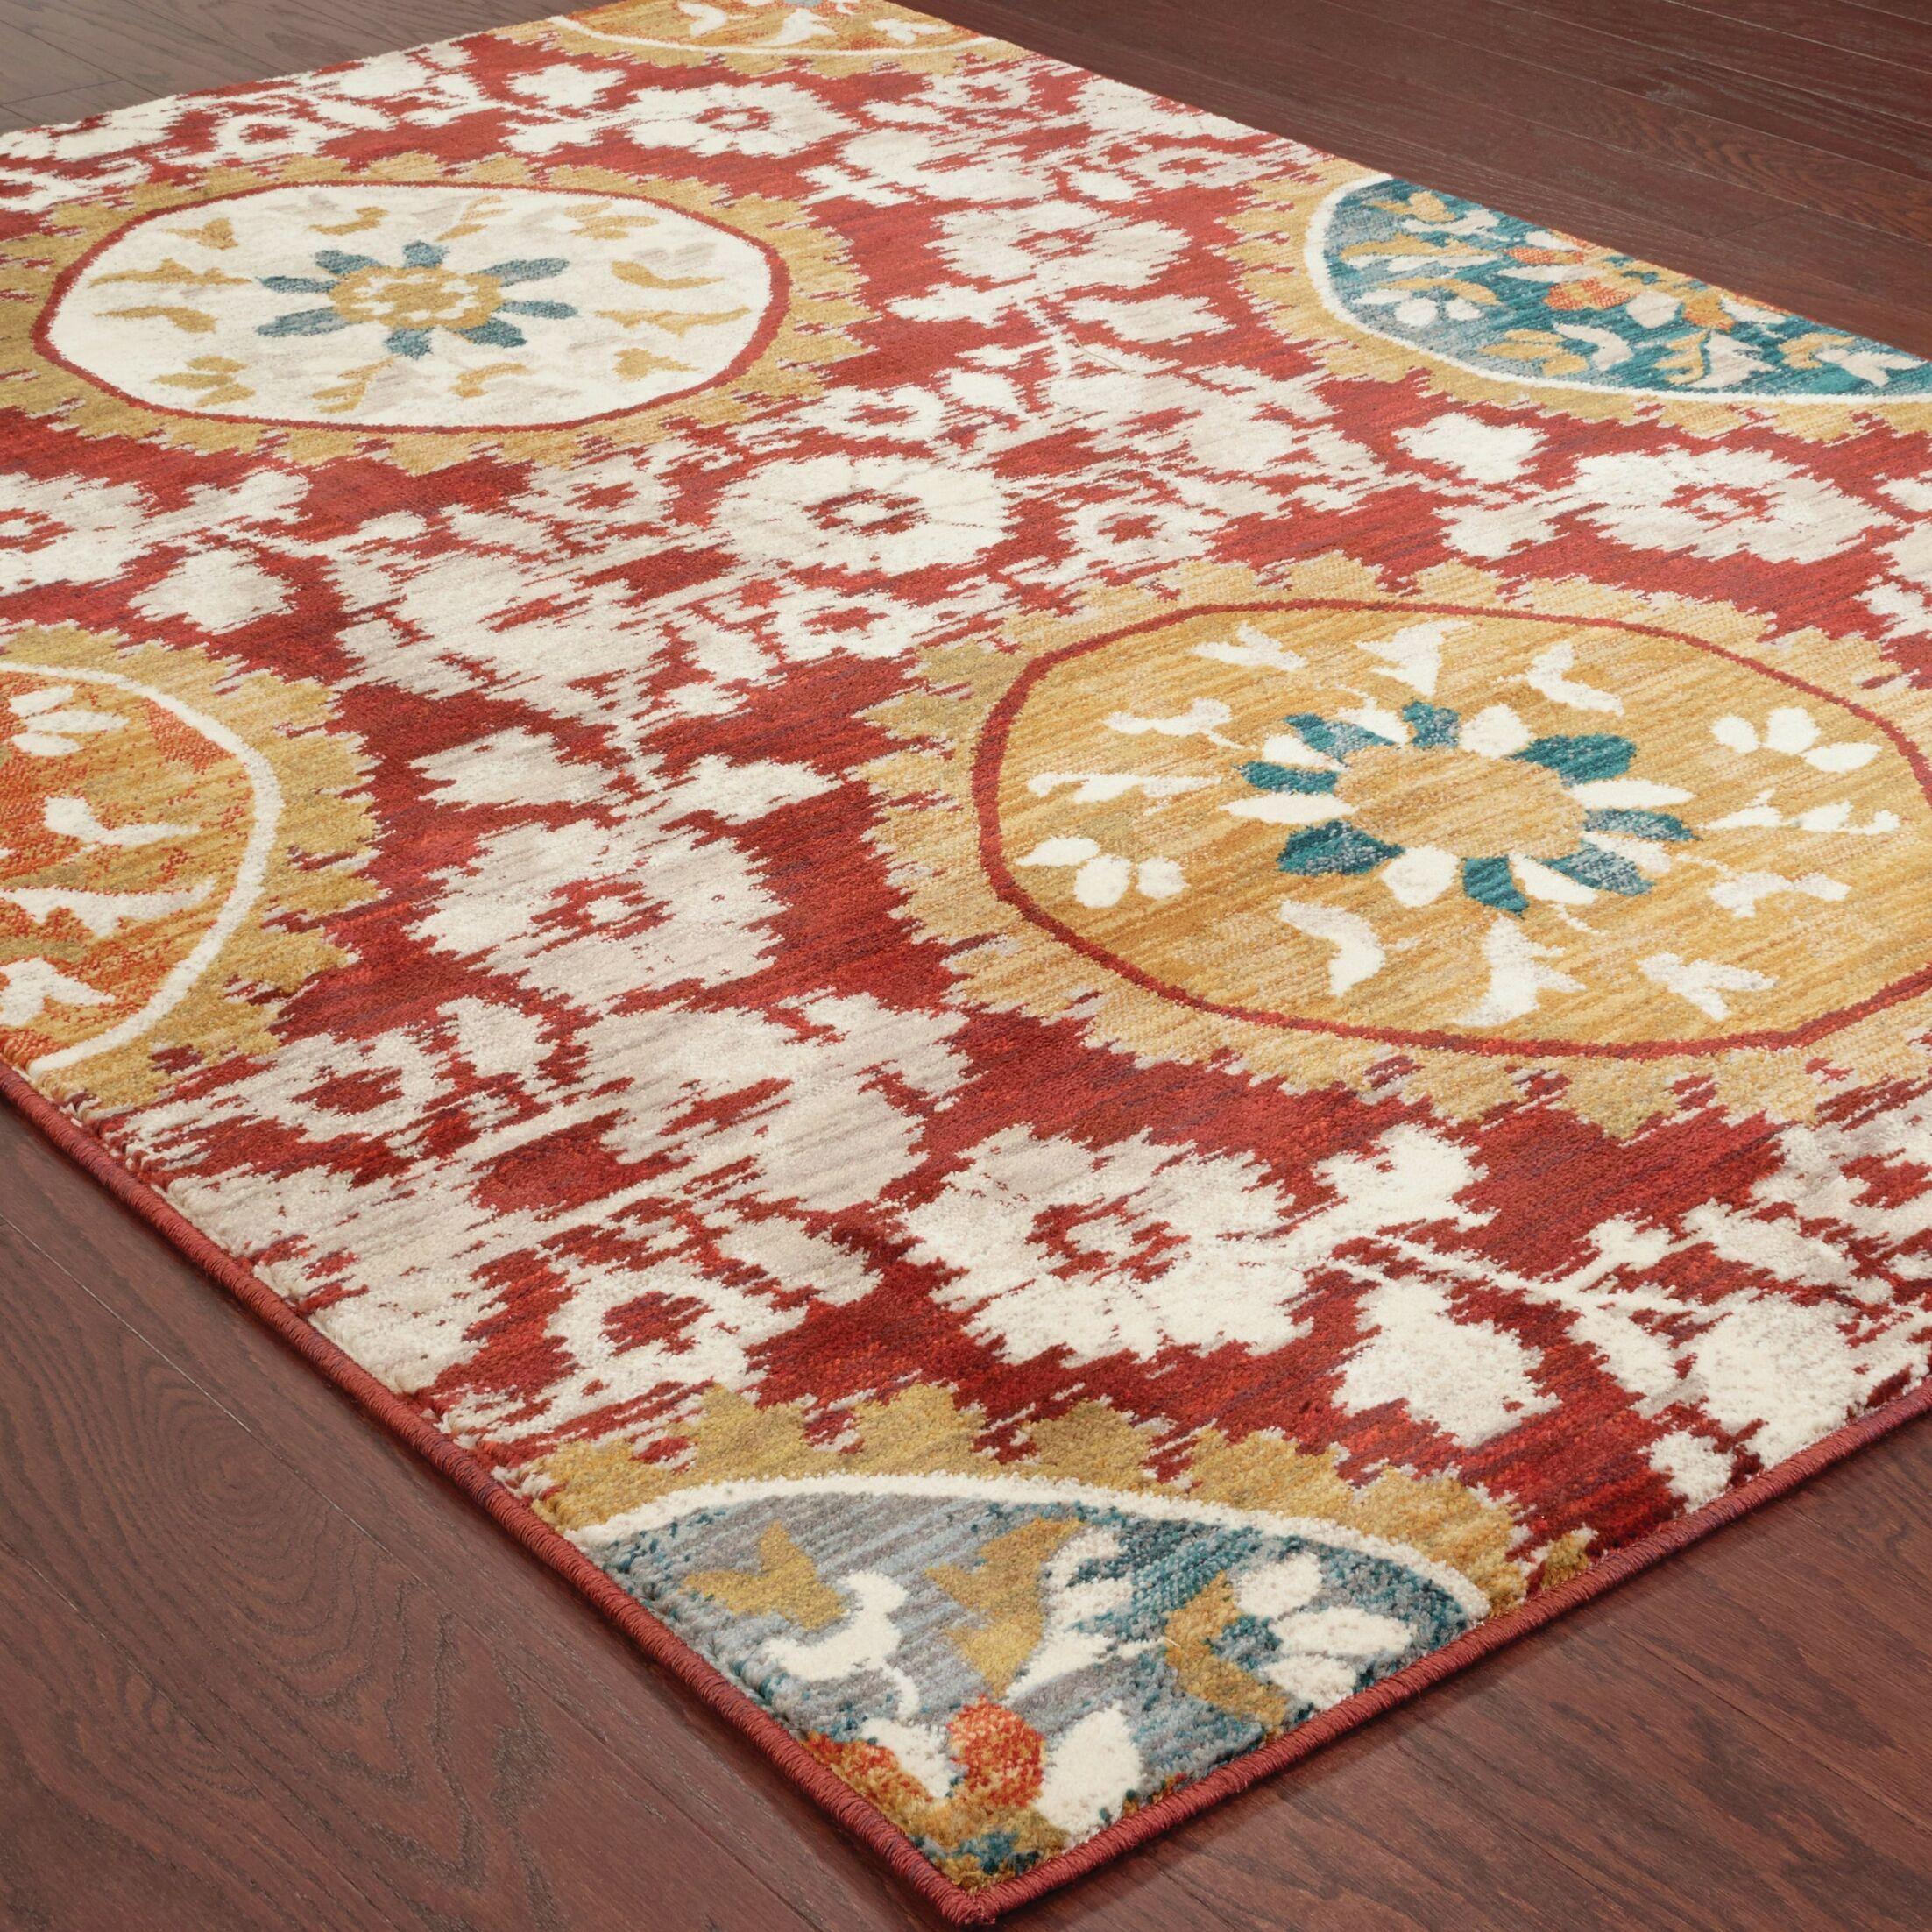 Herring Red/Gold Area Rug Rug Size: Rectangle 5'3